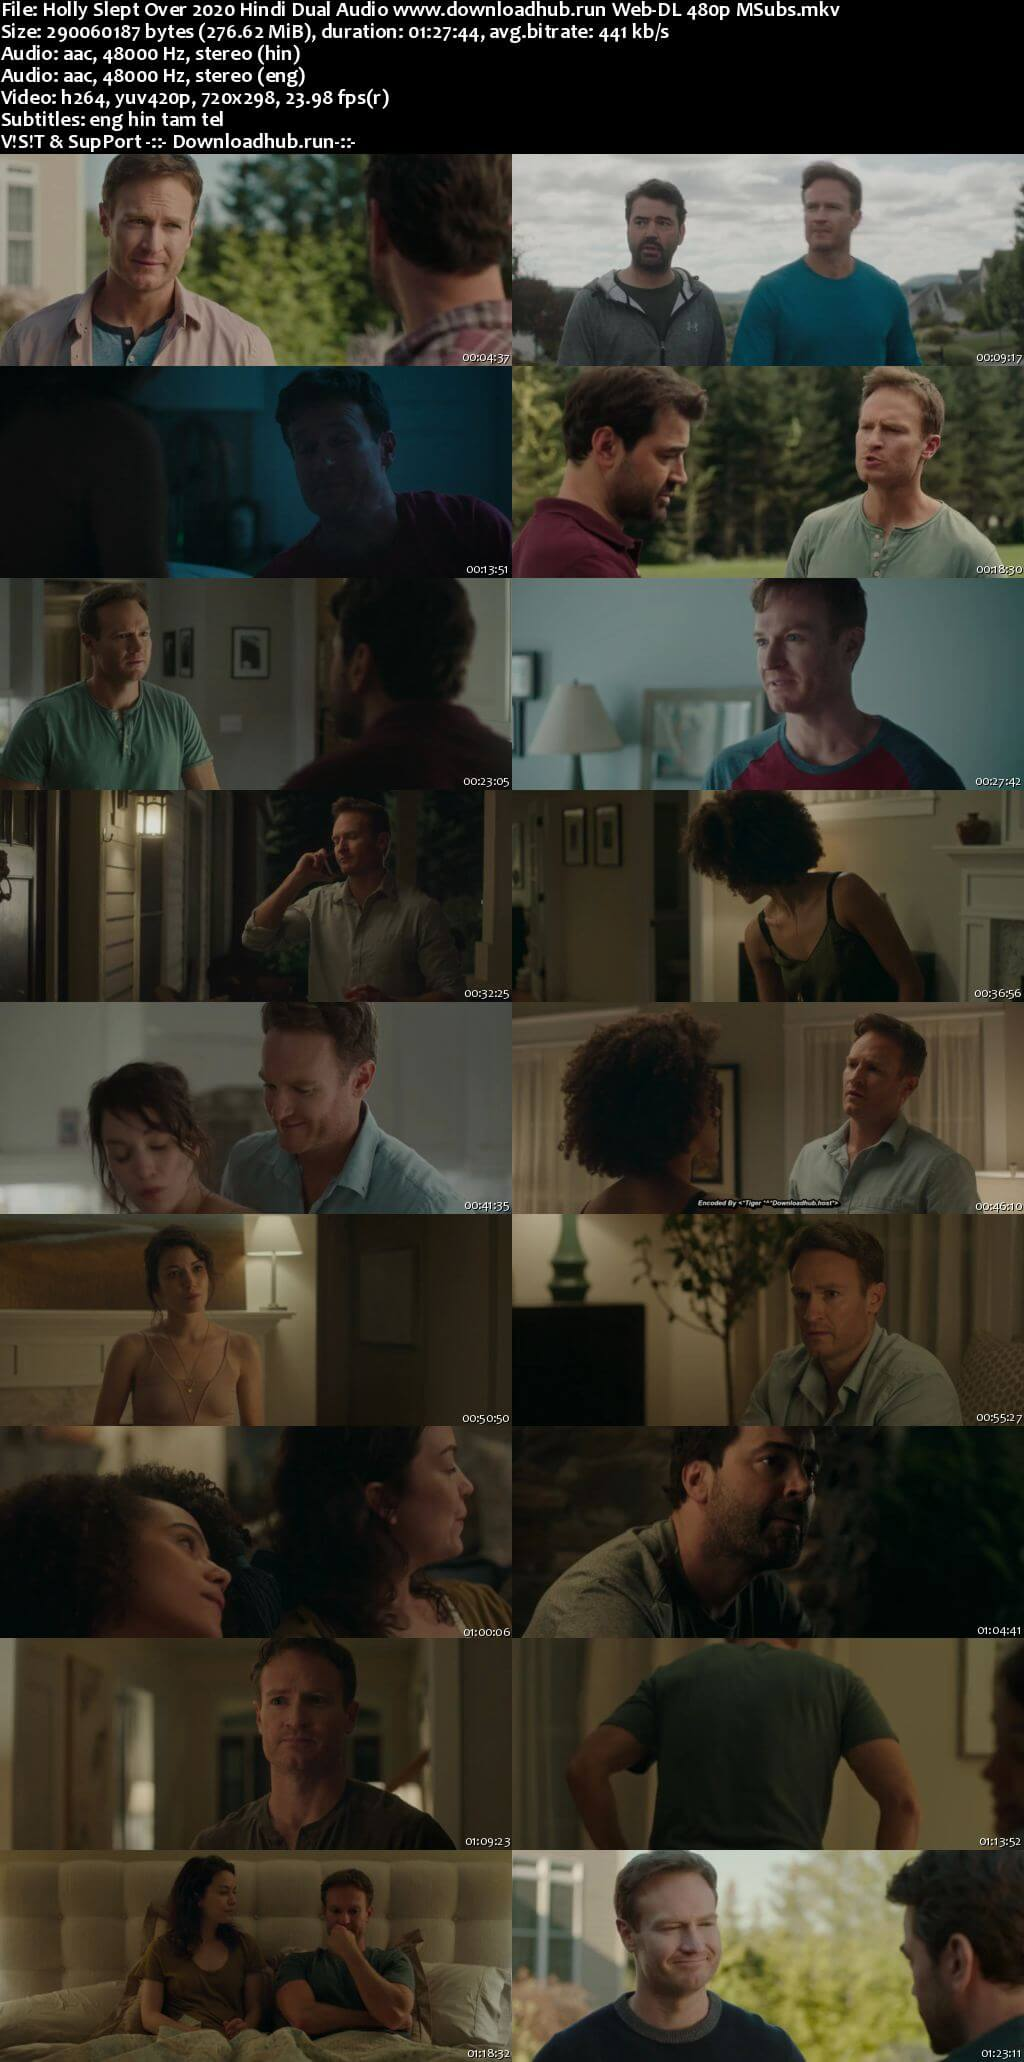 Holly Slept Over 2020 Hindi Dual Audio 280MB Web-DL 480p MSubs